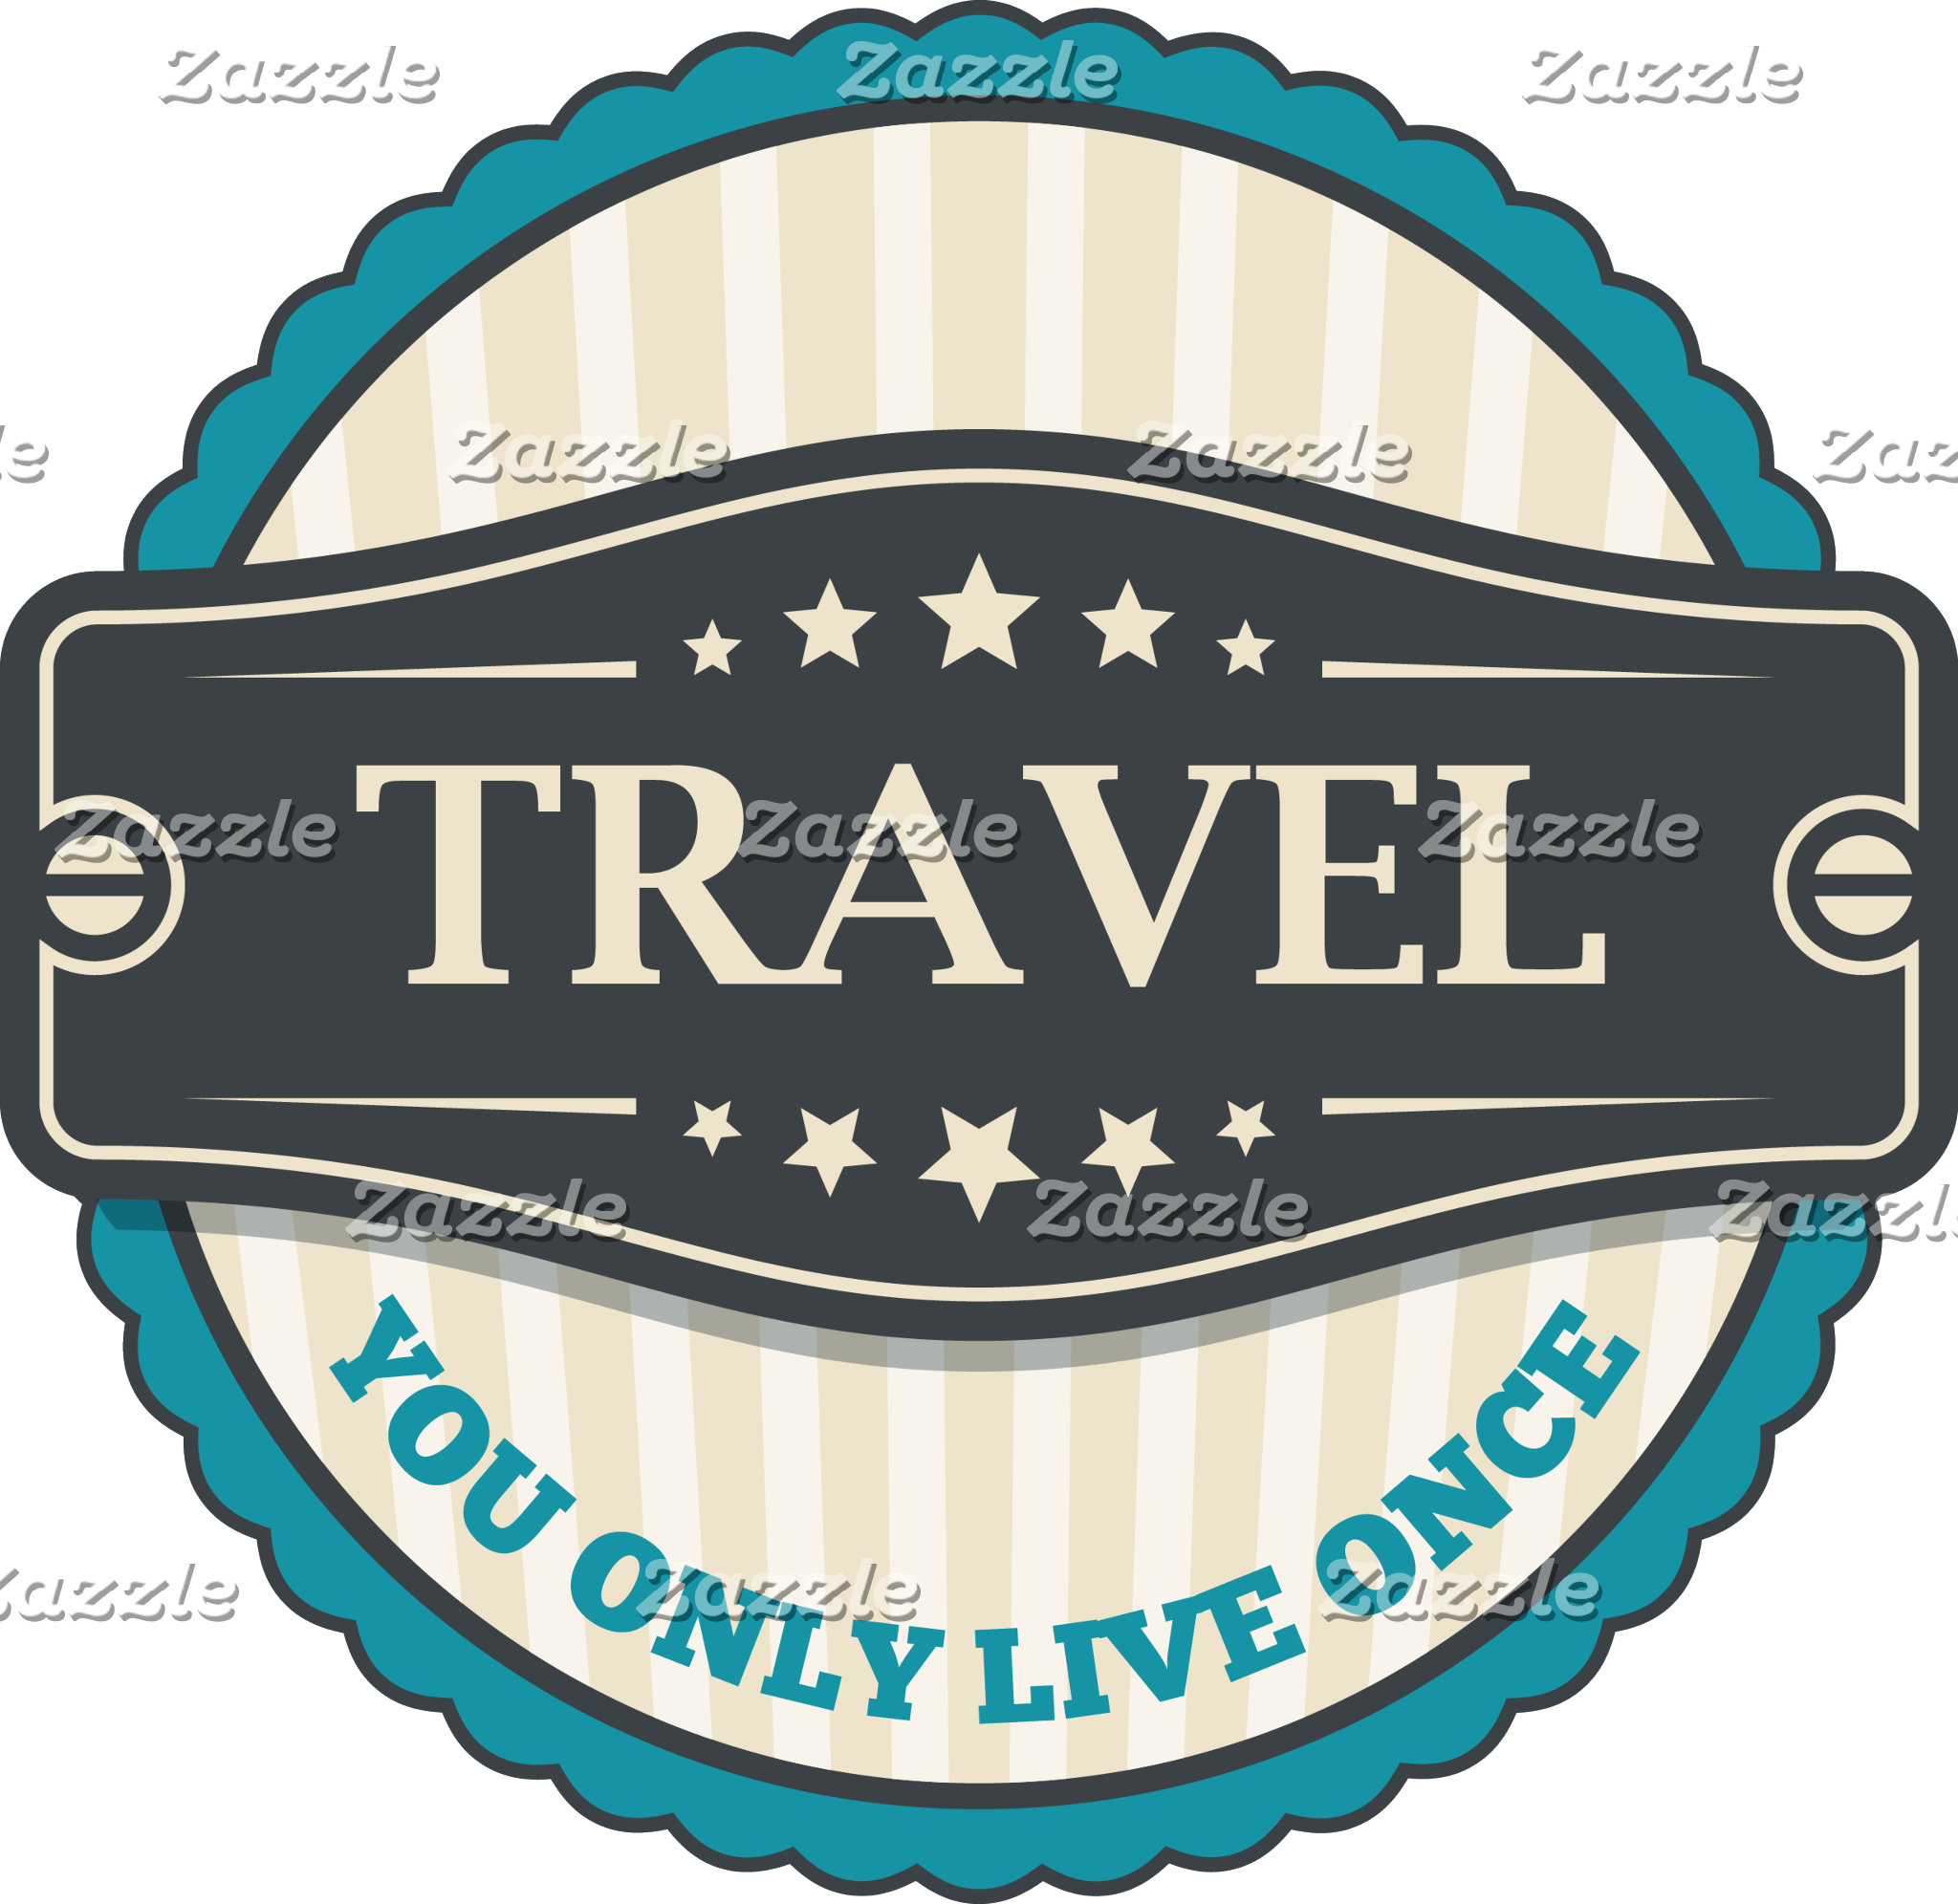 Travel: You Only Live Once